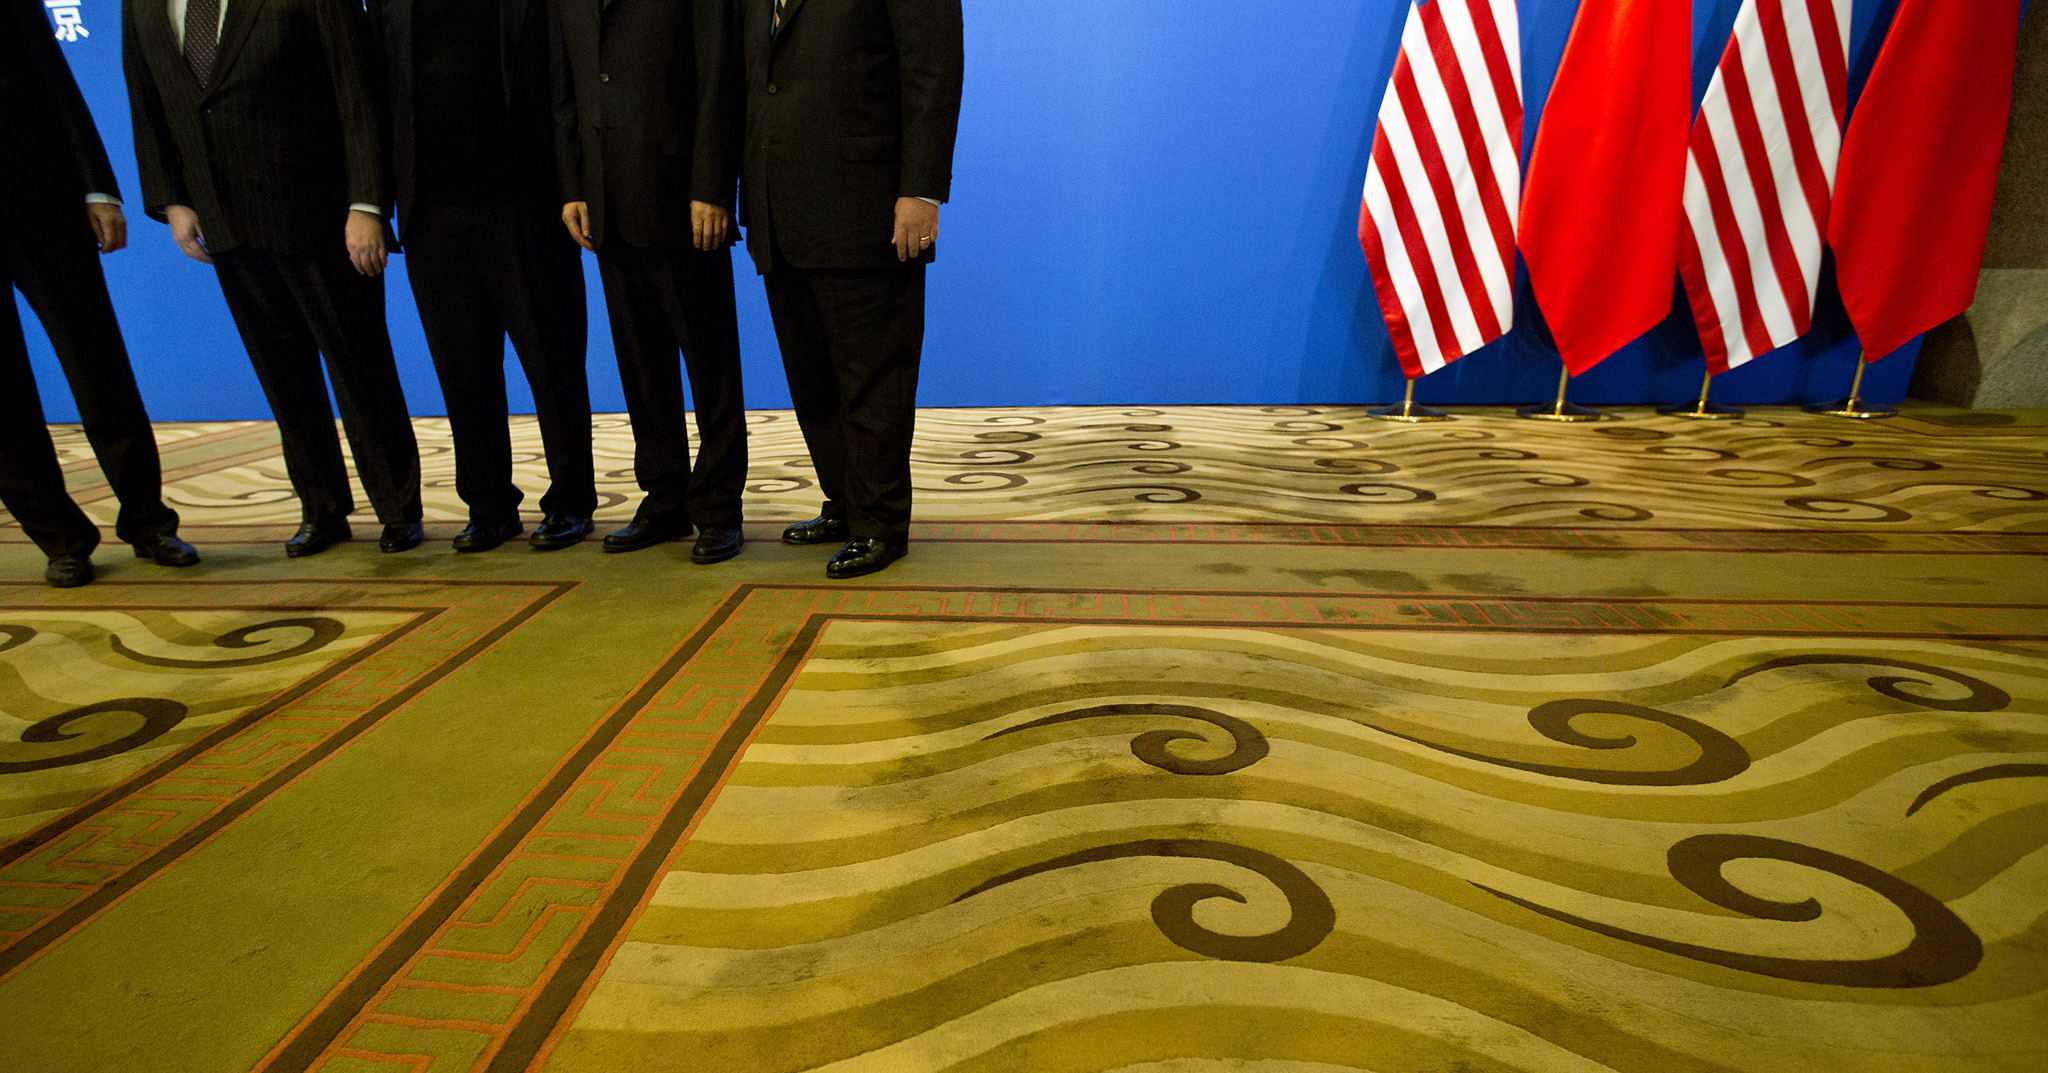 Officials pose for photos near U.S. and Chinese national flags in a meeting room before the opening session of the 24th China-U.S. Joint Commission on Commerce and Trade at Diaoyutai State Guesthouse in Beijing, Friday, Dec. 20, 2013.